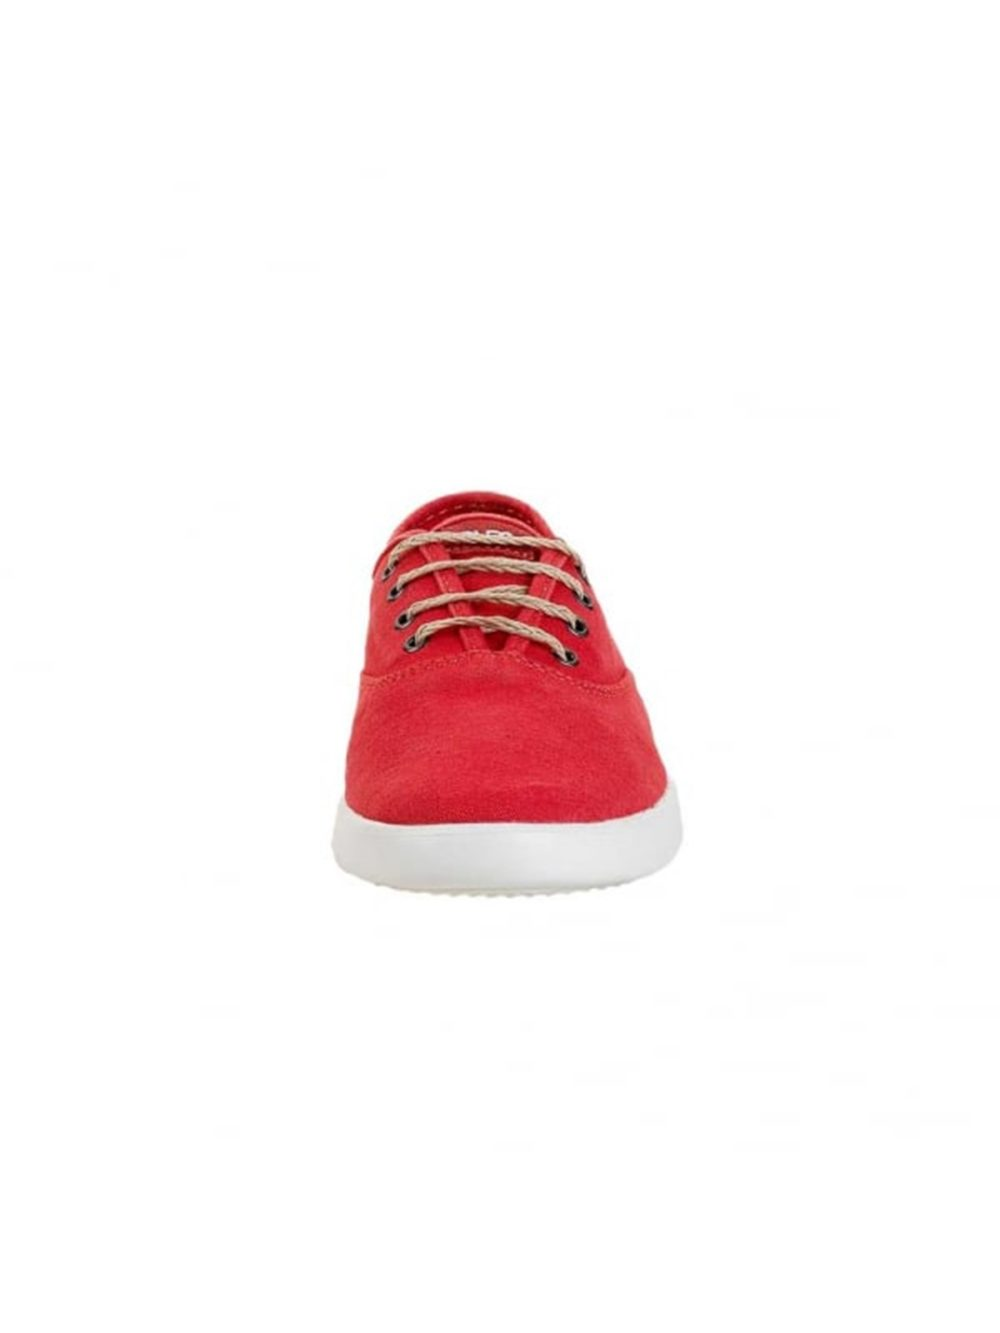 Jenny Coral Canvas Hey Dude Shoes Katie Kerr Women's Clothing